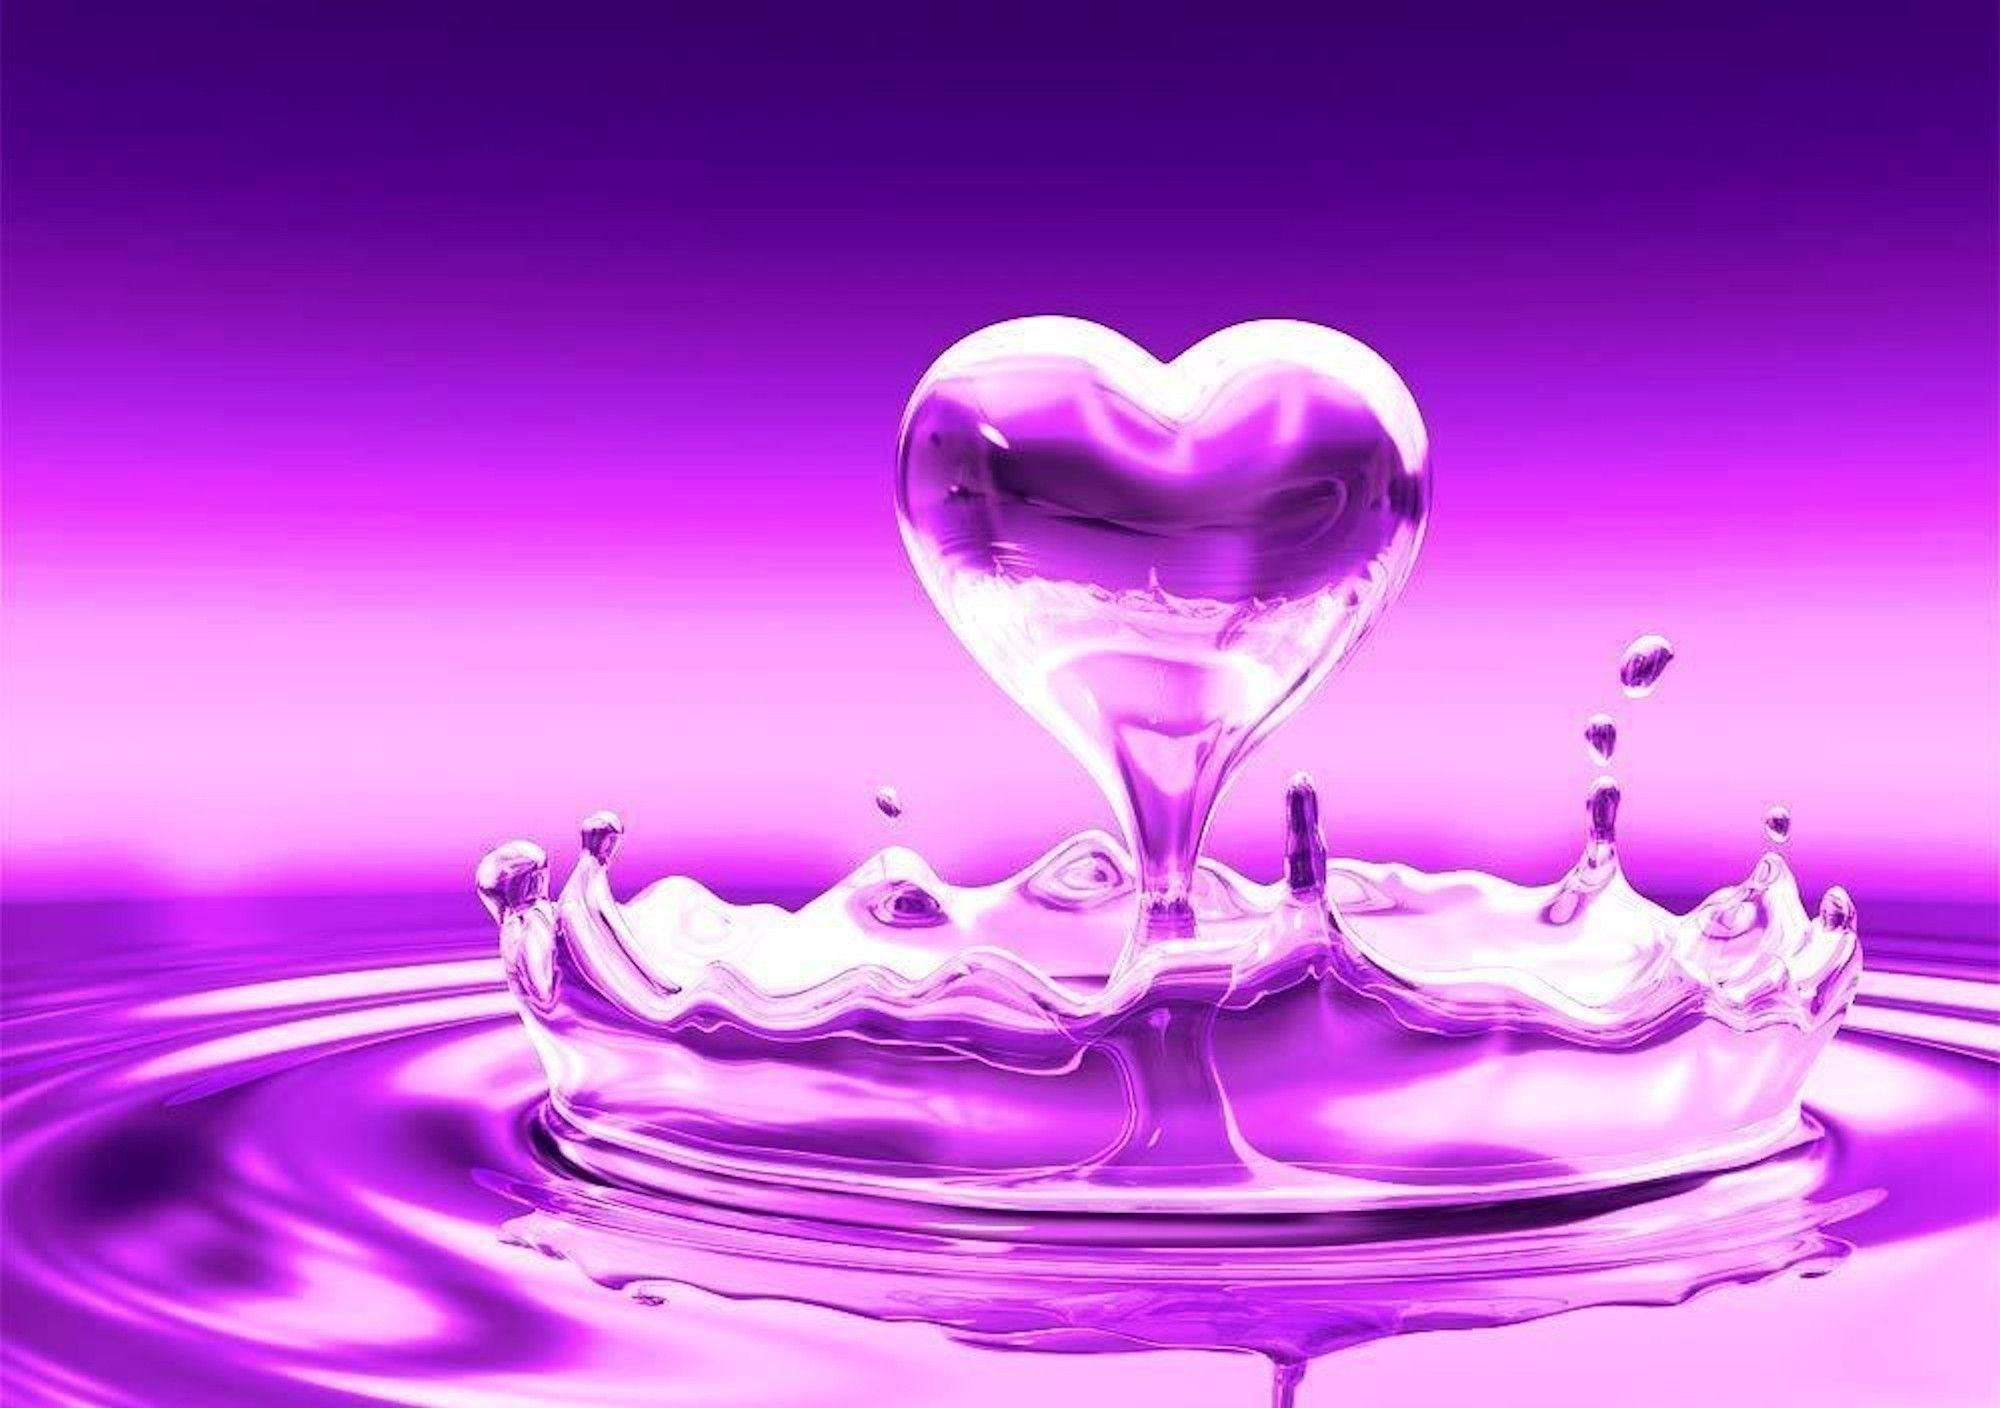 60 Purple and Pink Heart Wallpapers   Download at WallpaperBro 2000x1408